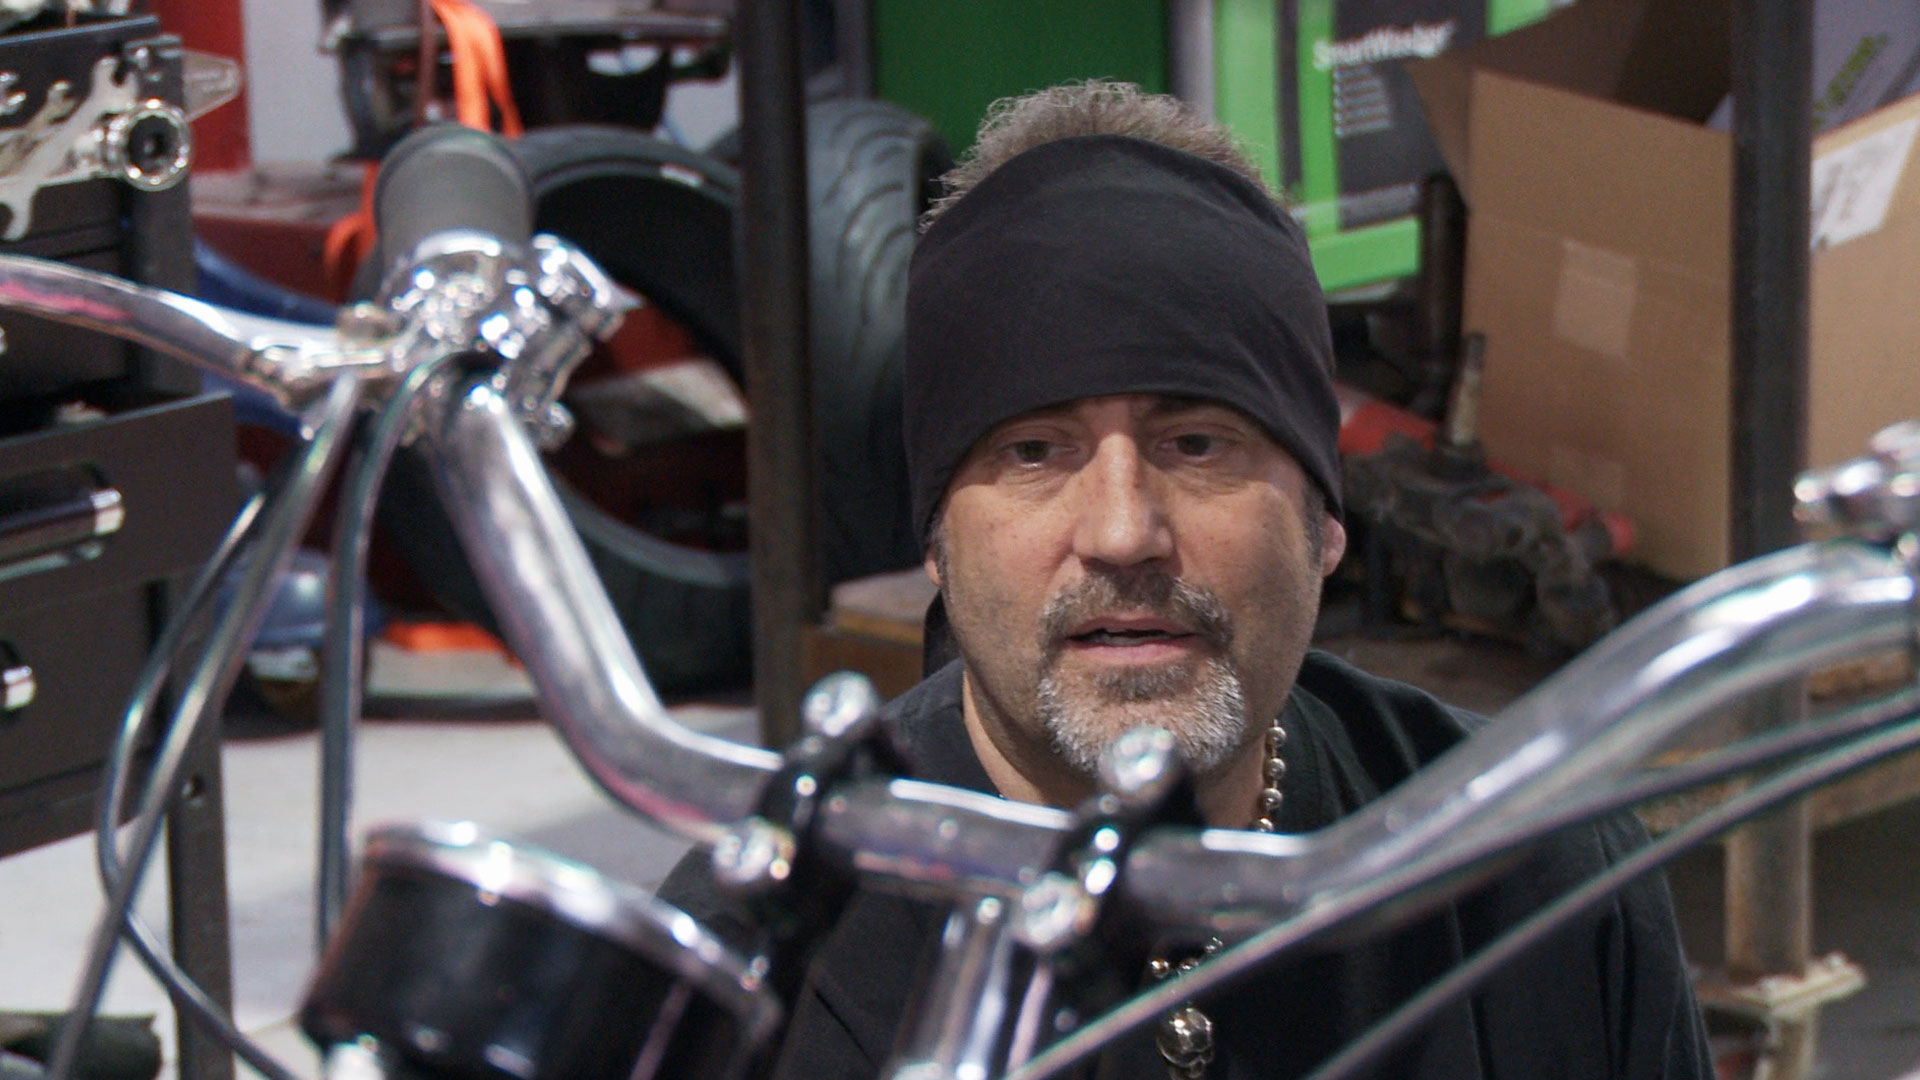 Counting Cars : Tricked Out Triumph Part 2